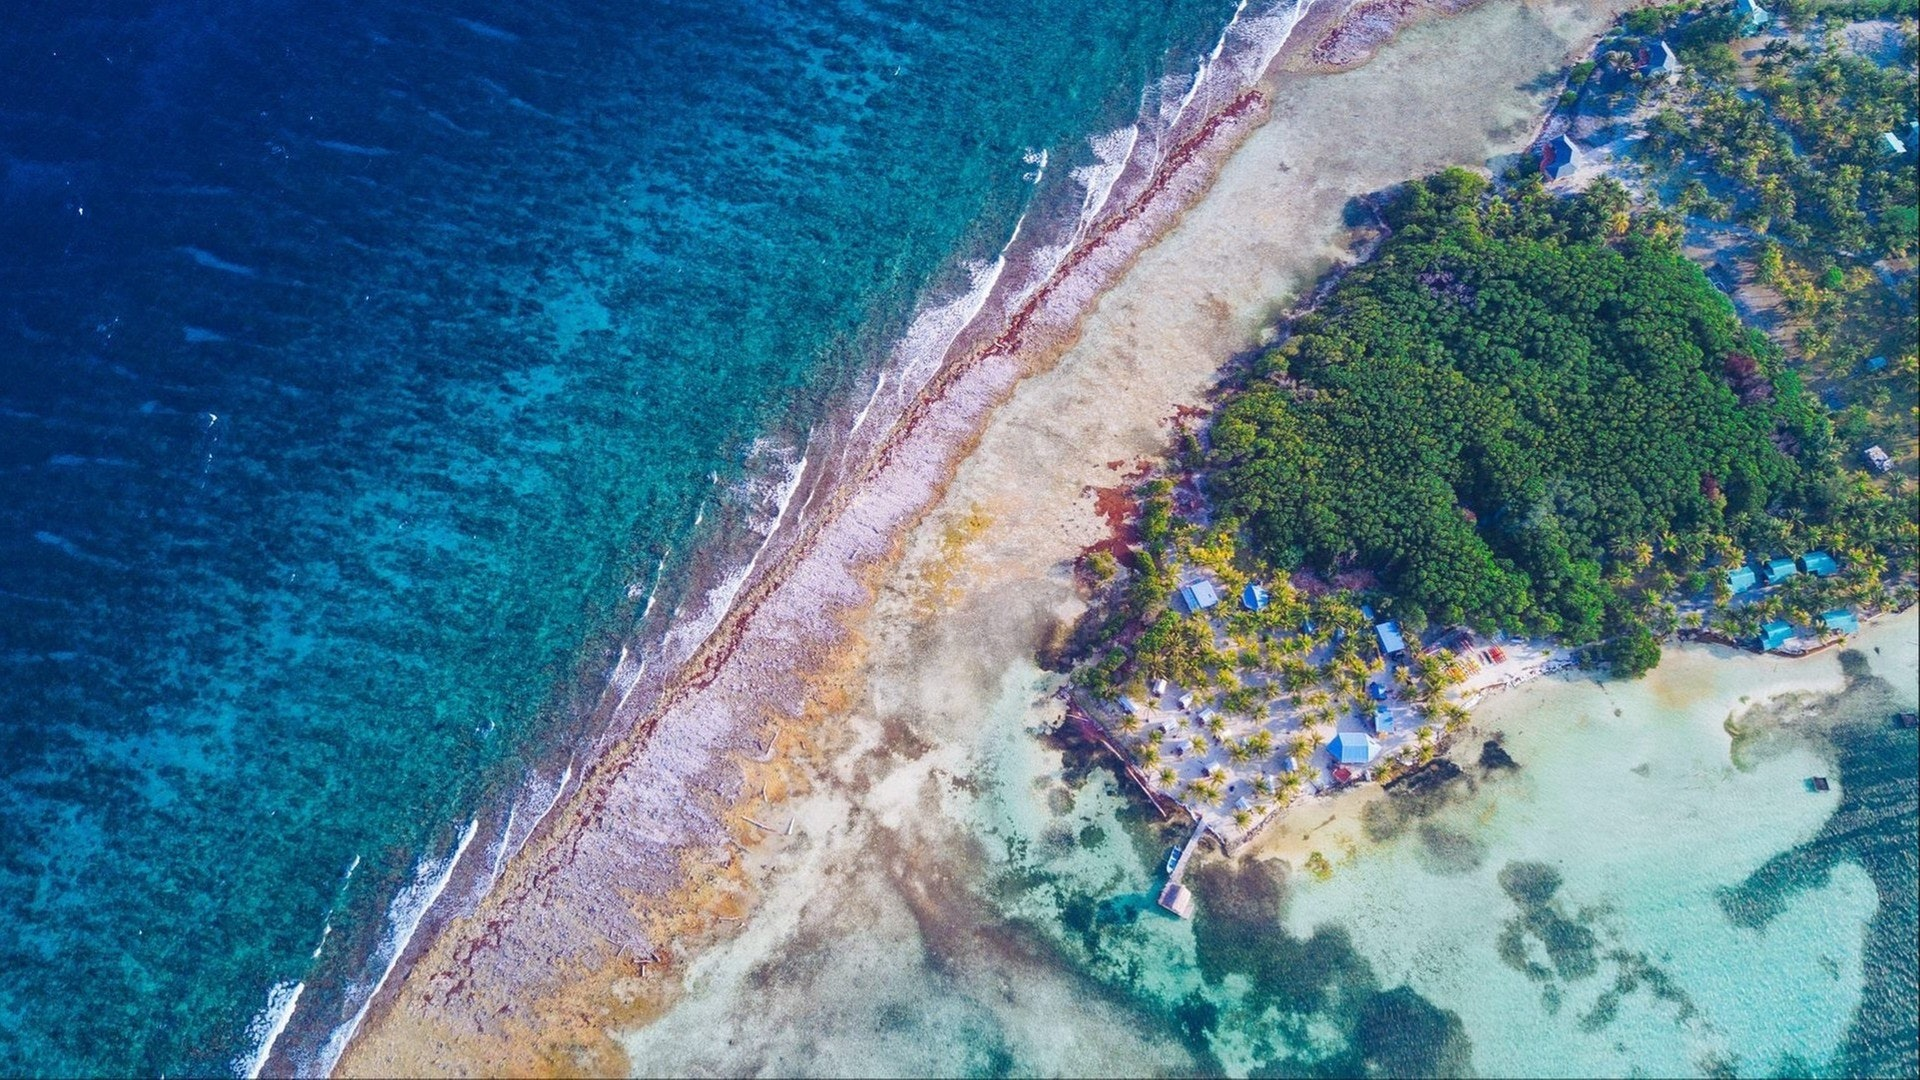 Glover's Reef Atoll in Belize